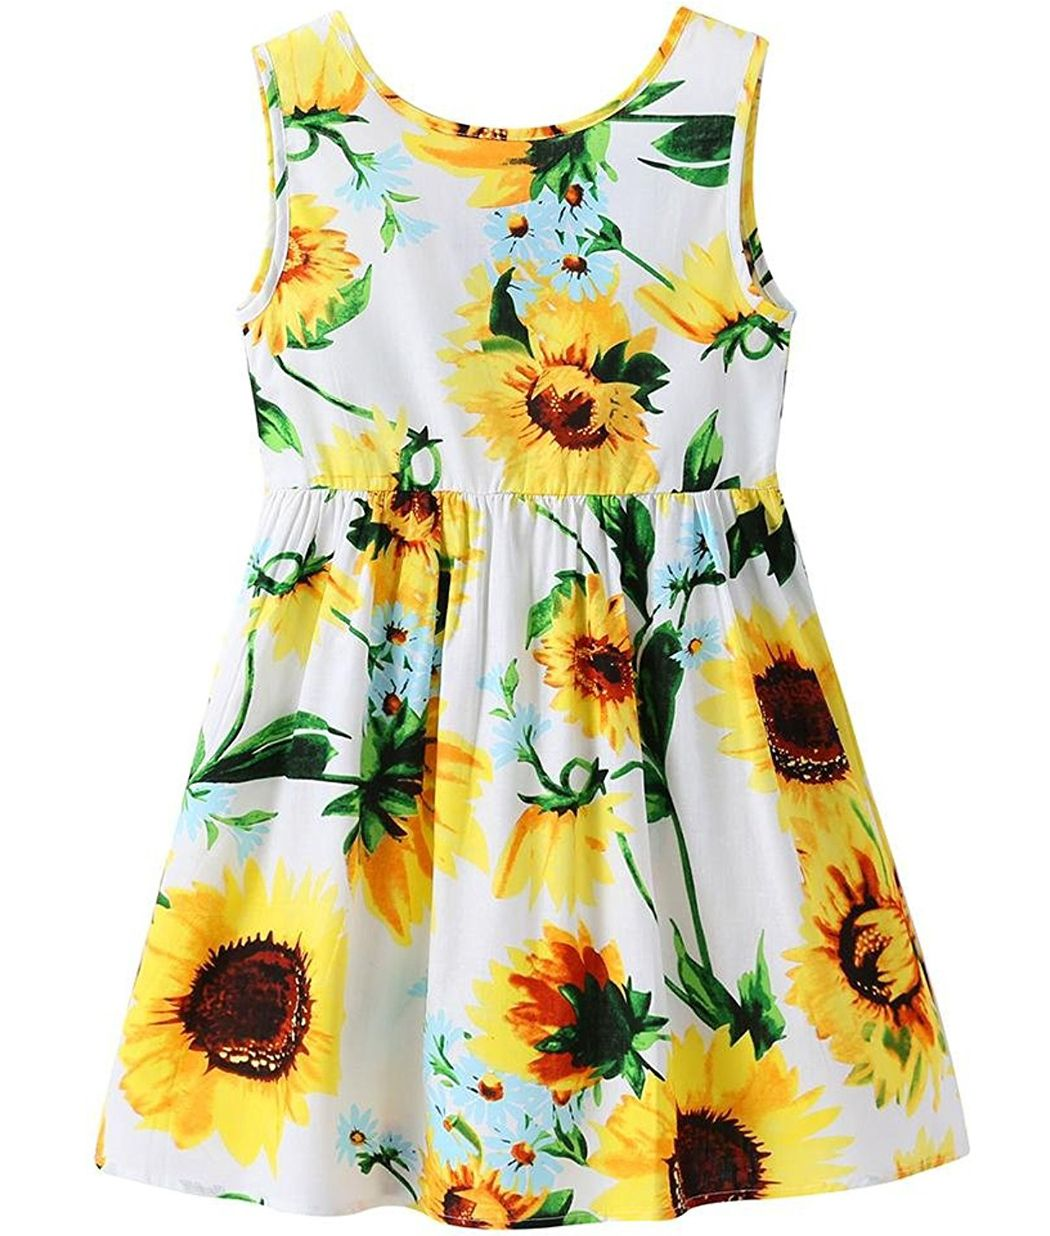 bc13ac2ff13f3 Sleeveless,tank top,adorable sunflower print sundress. Fashion beautiful  bow-tie on the back.